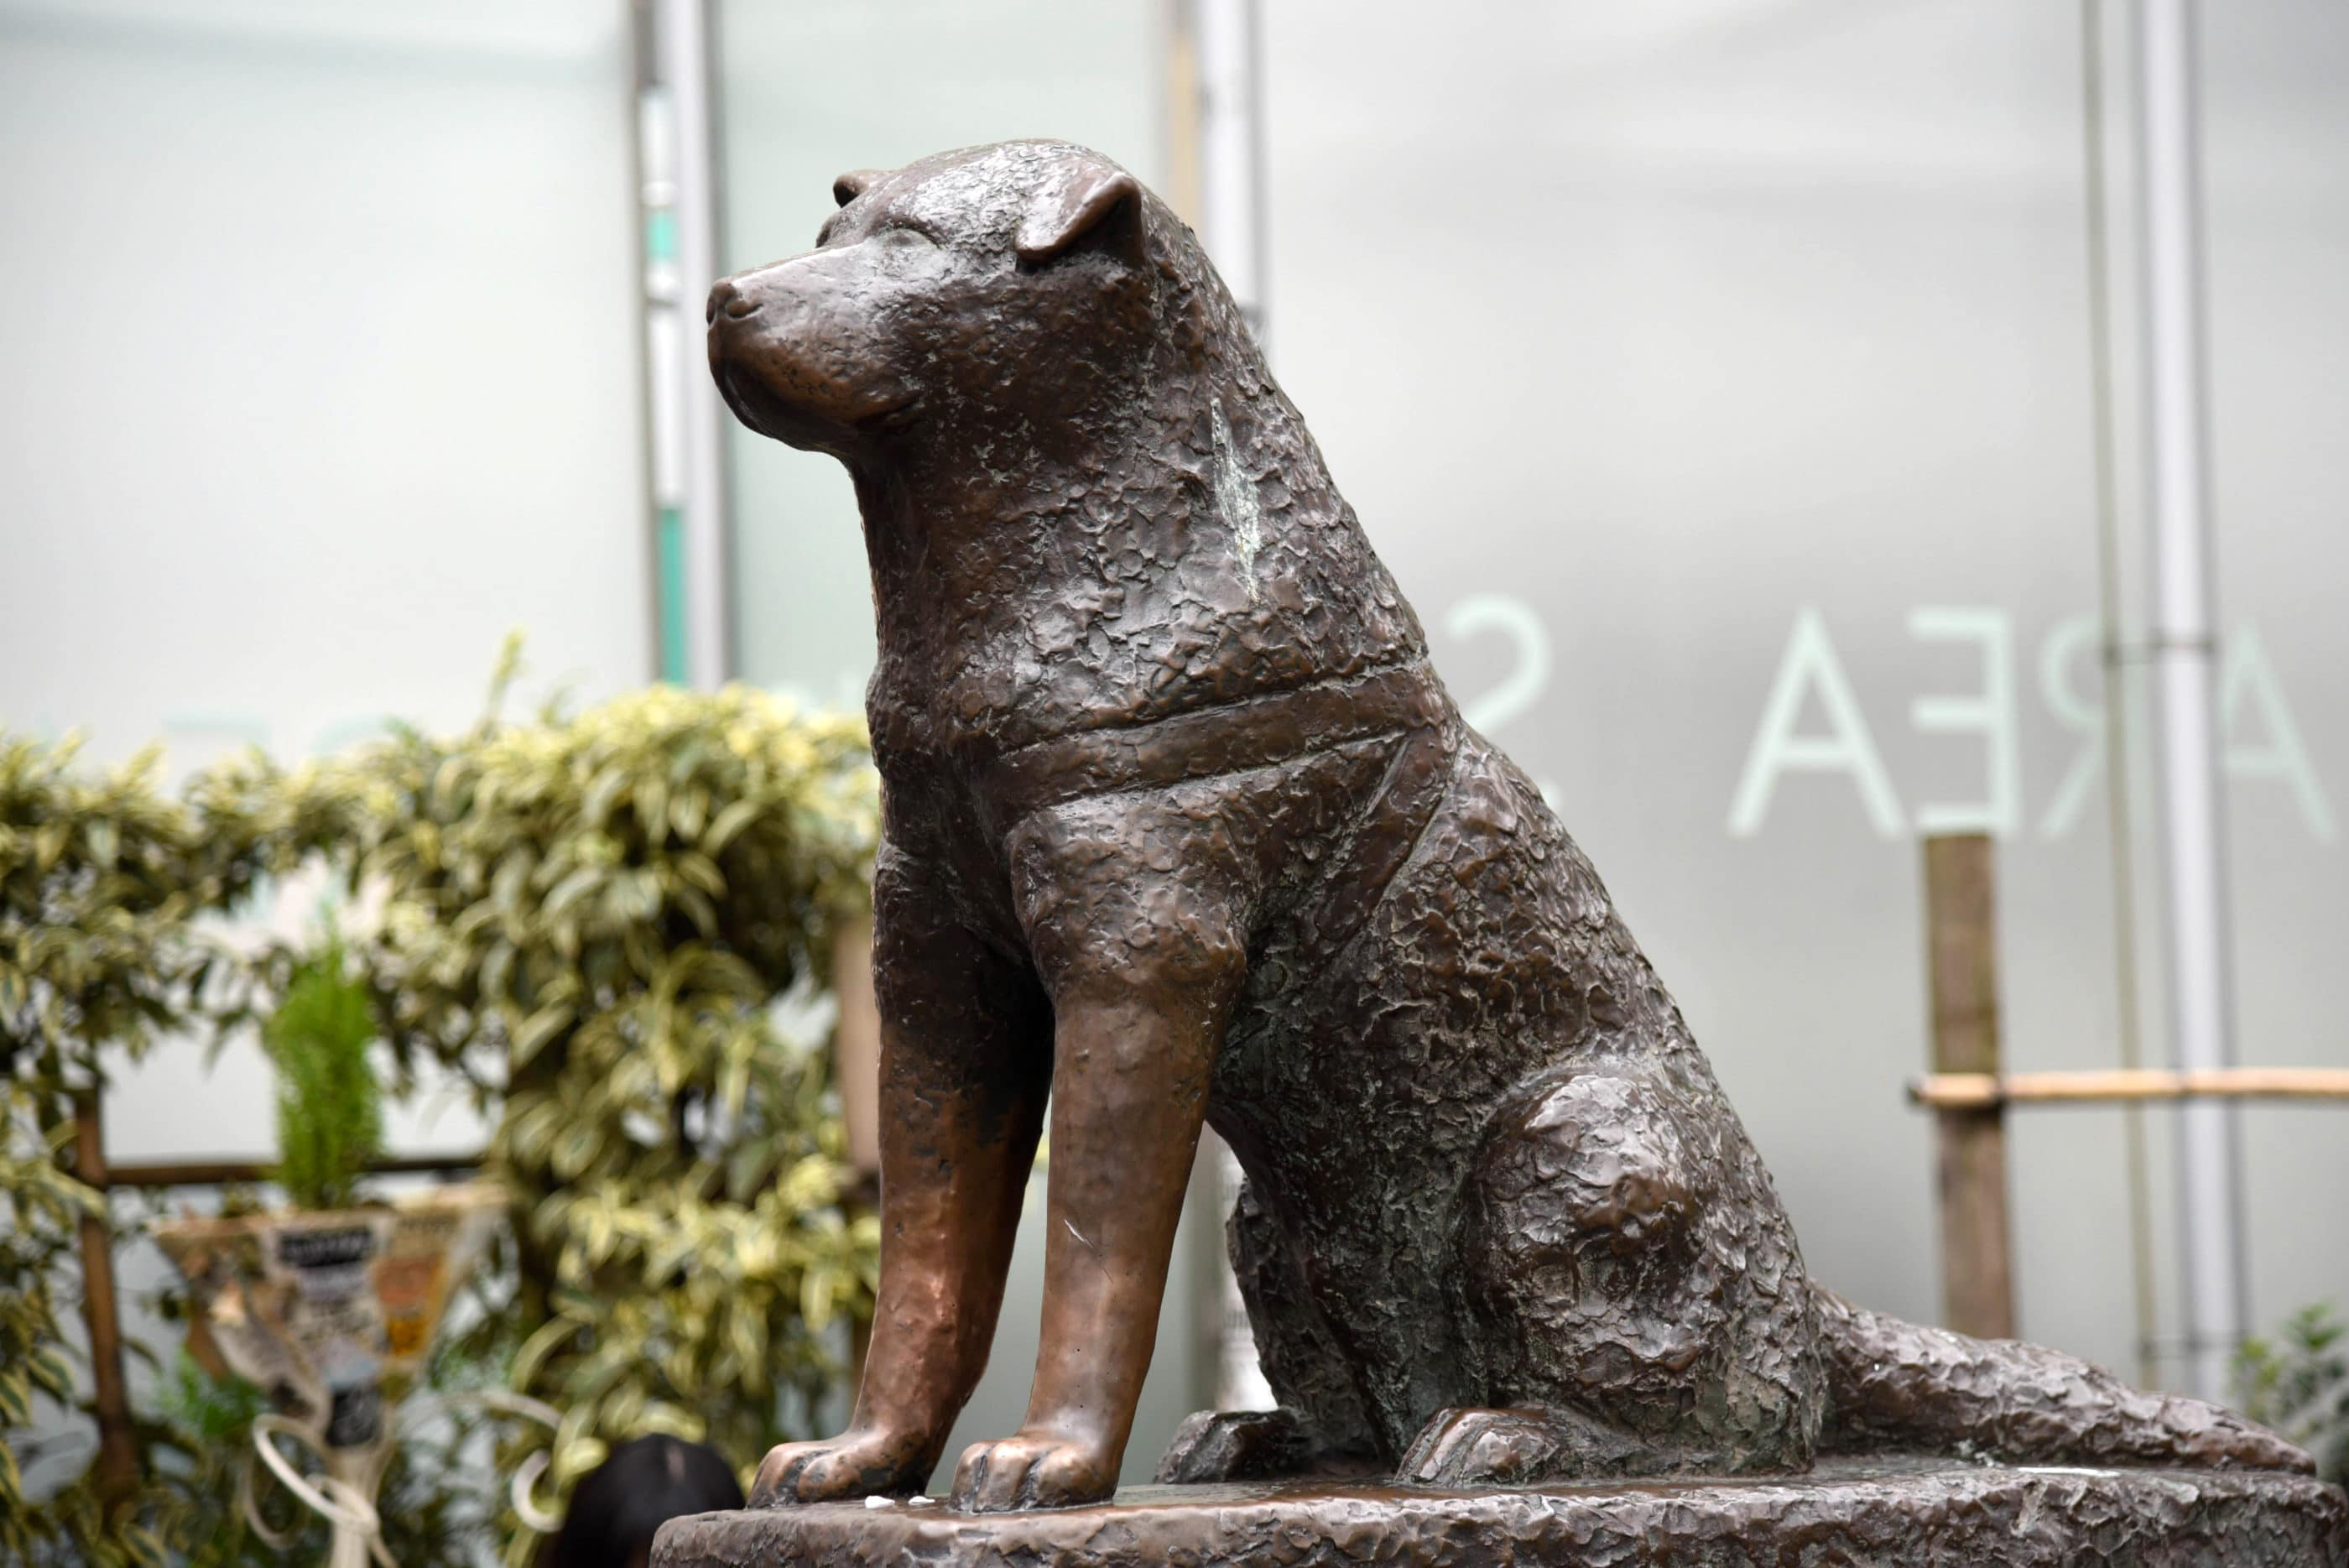 Bronze statue of Hachiko, the loyal Akita who waited for his owner at Shibuya Station for nine years.